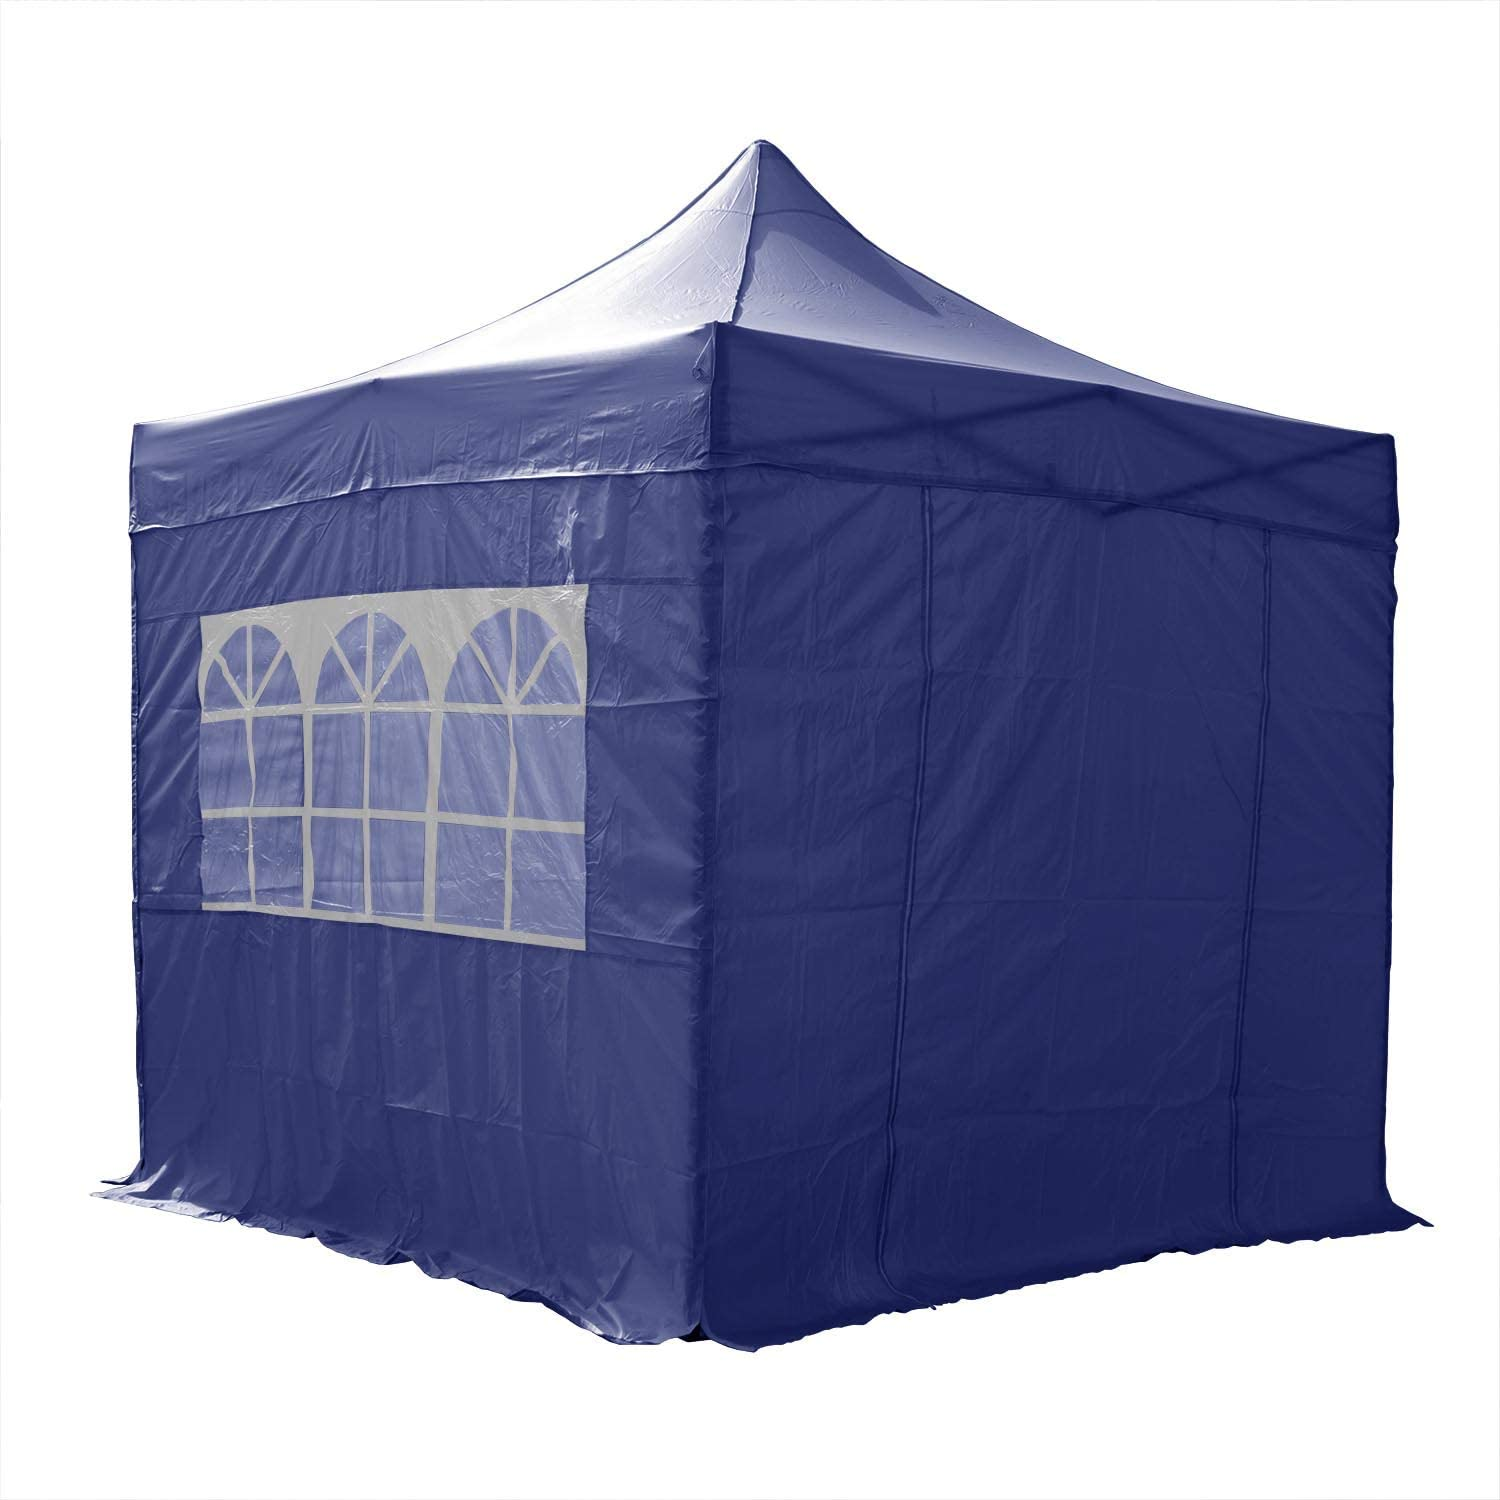 AirWave C537A - Gazebo, Color Azul: Amazon.es: Jardín